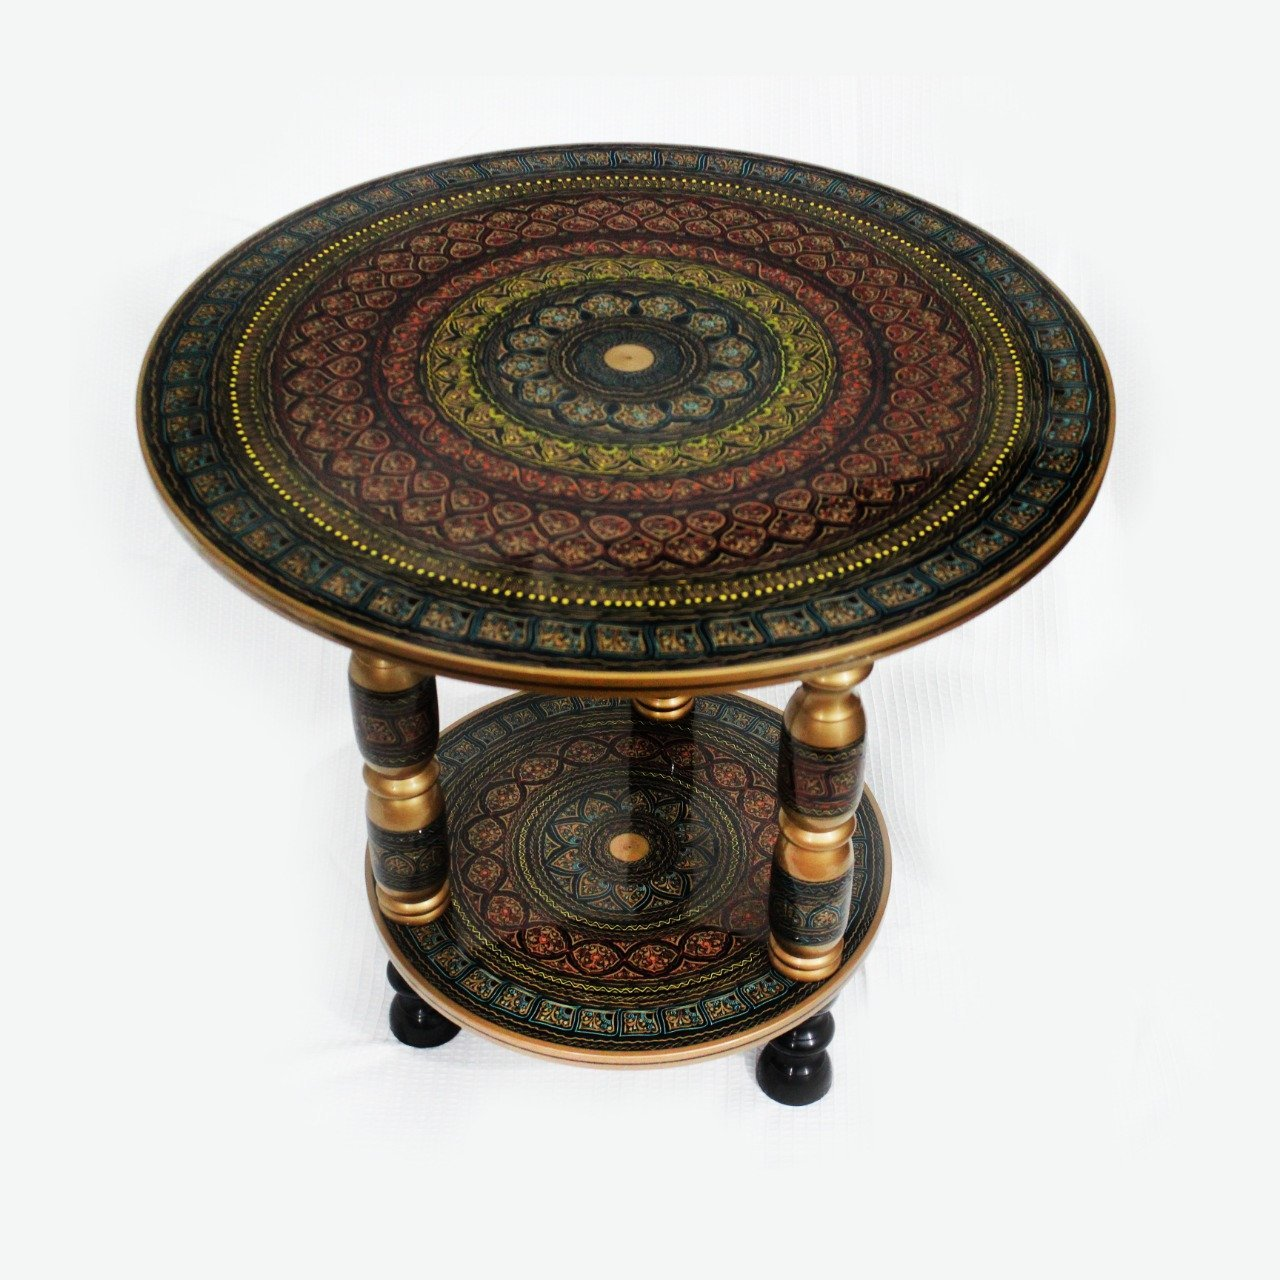 Double Wooden Table in Nakshi Art Top 24''- Black Gold